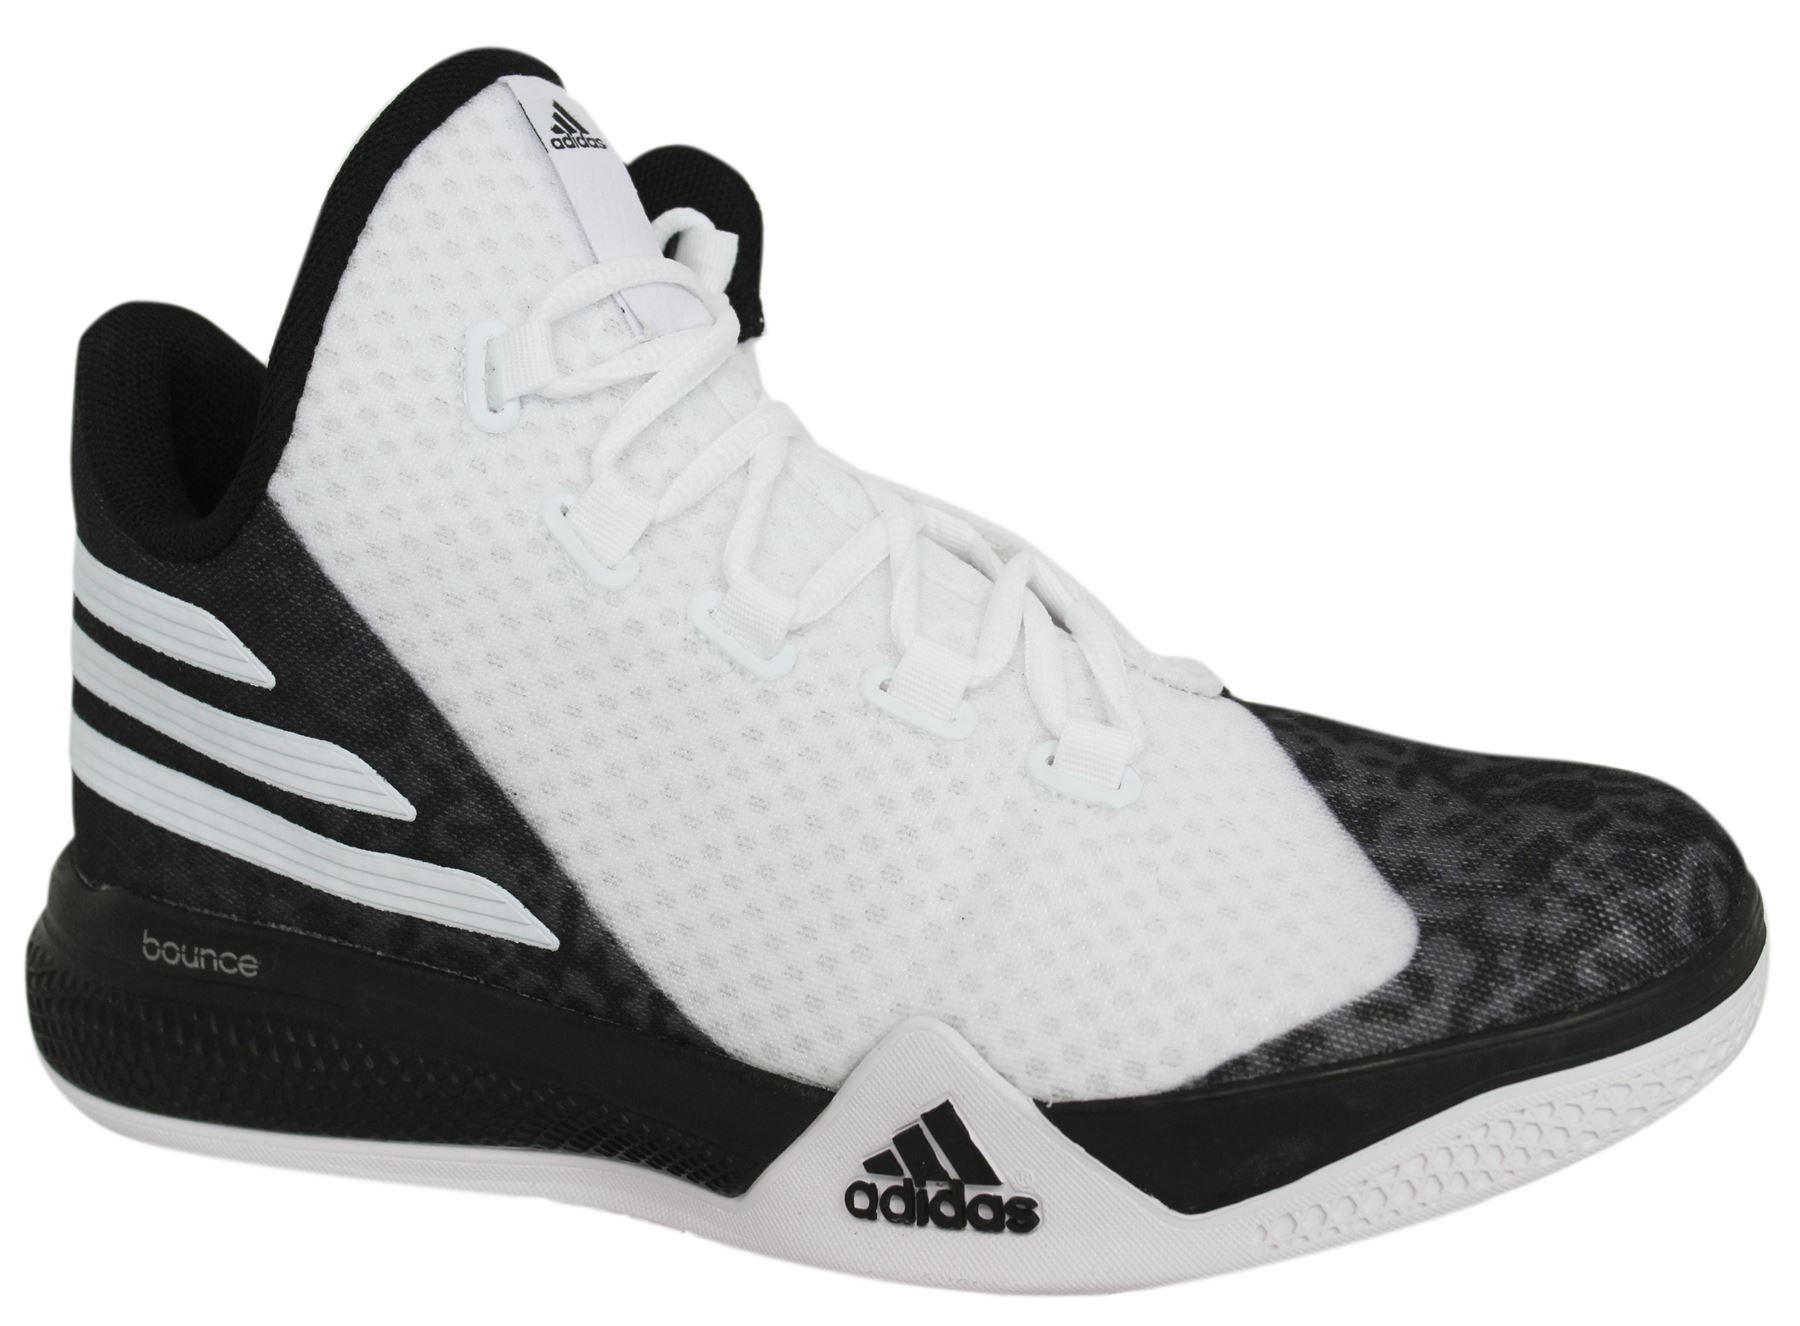 96b3acc08726 Details about Adidas Light Em Up 2 Lace Up White Black Mens Basketball Shoes  AQ8466 M14